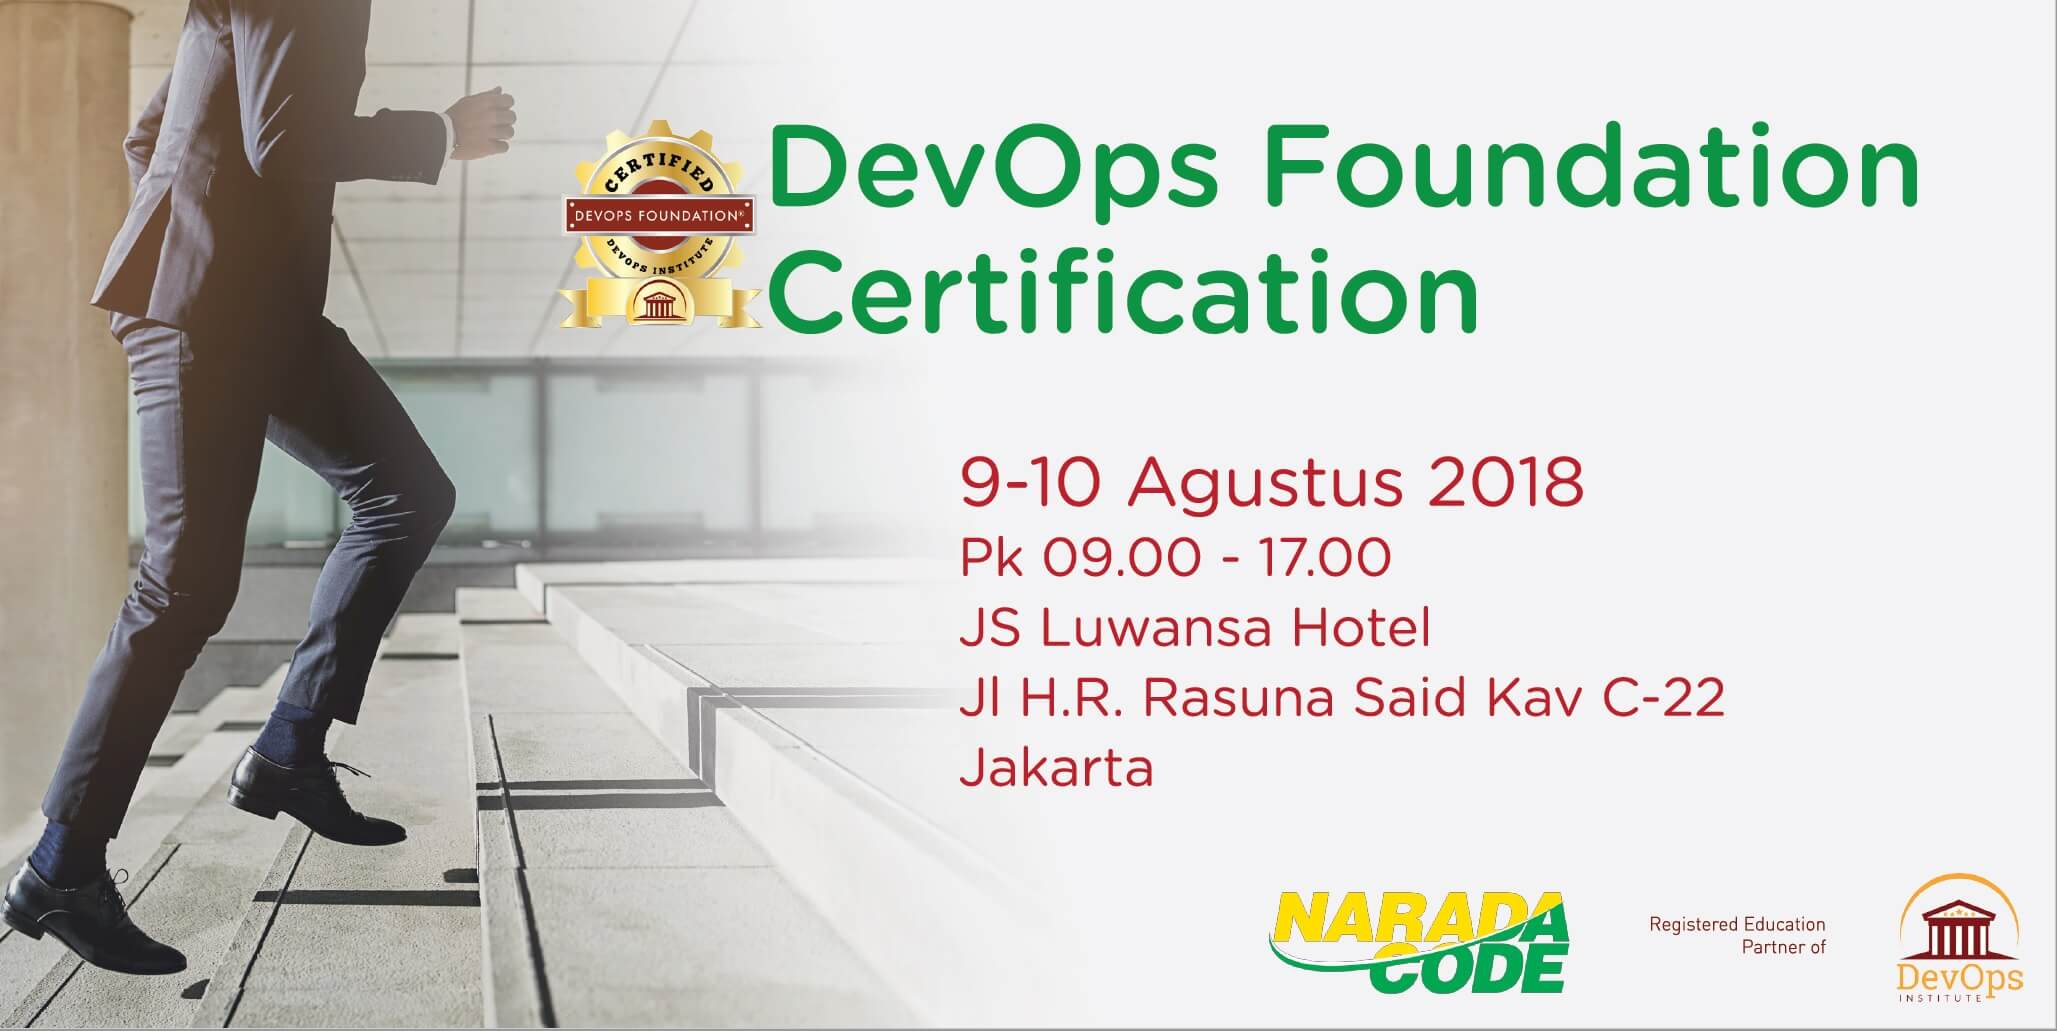 2 Days Devops Foundation Training And Certification Partner